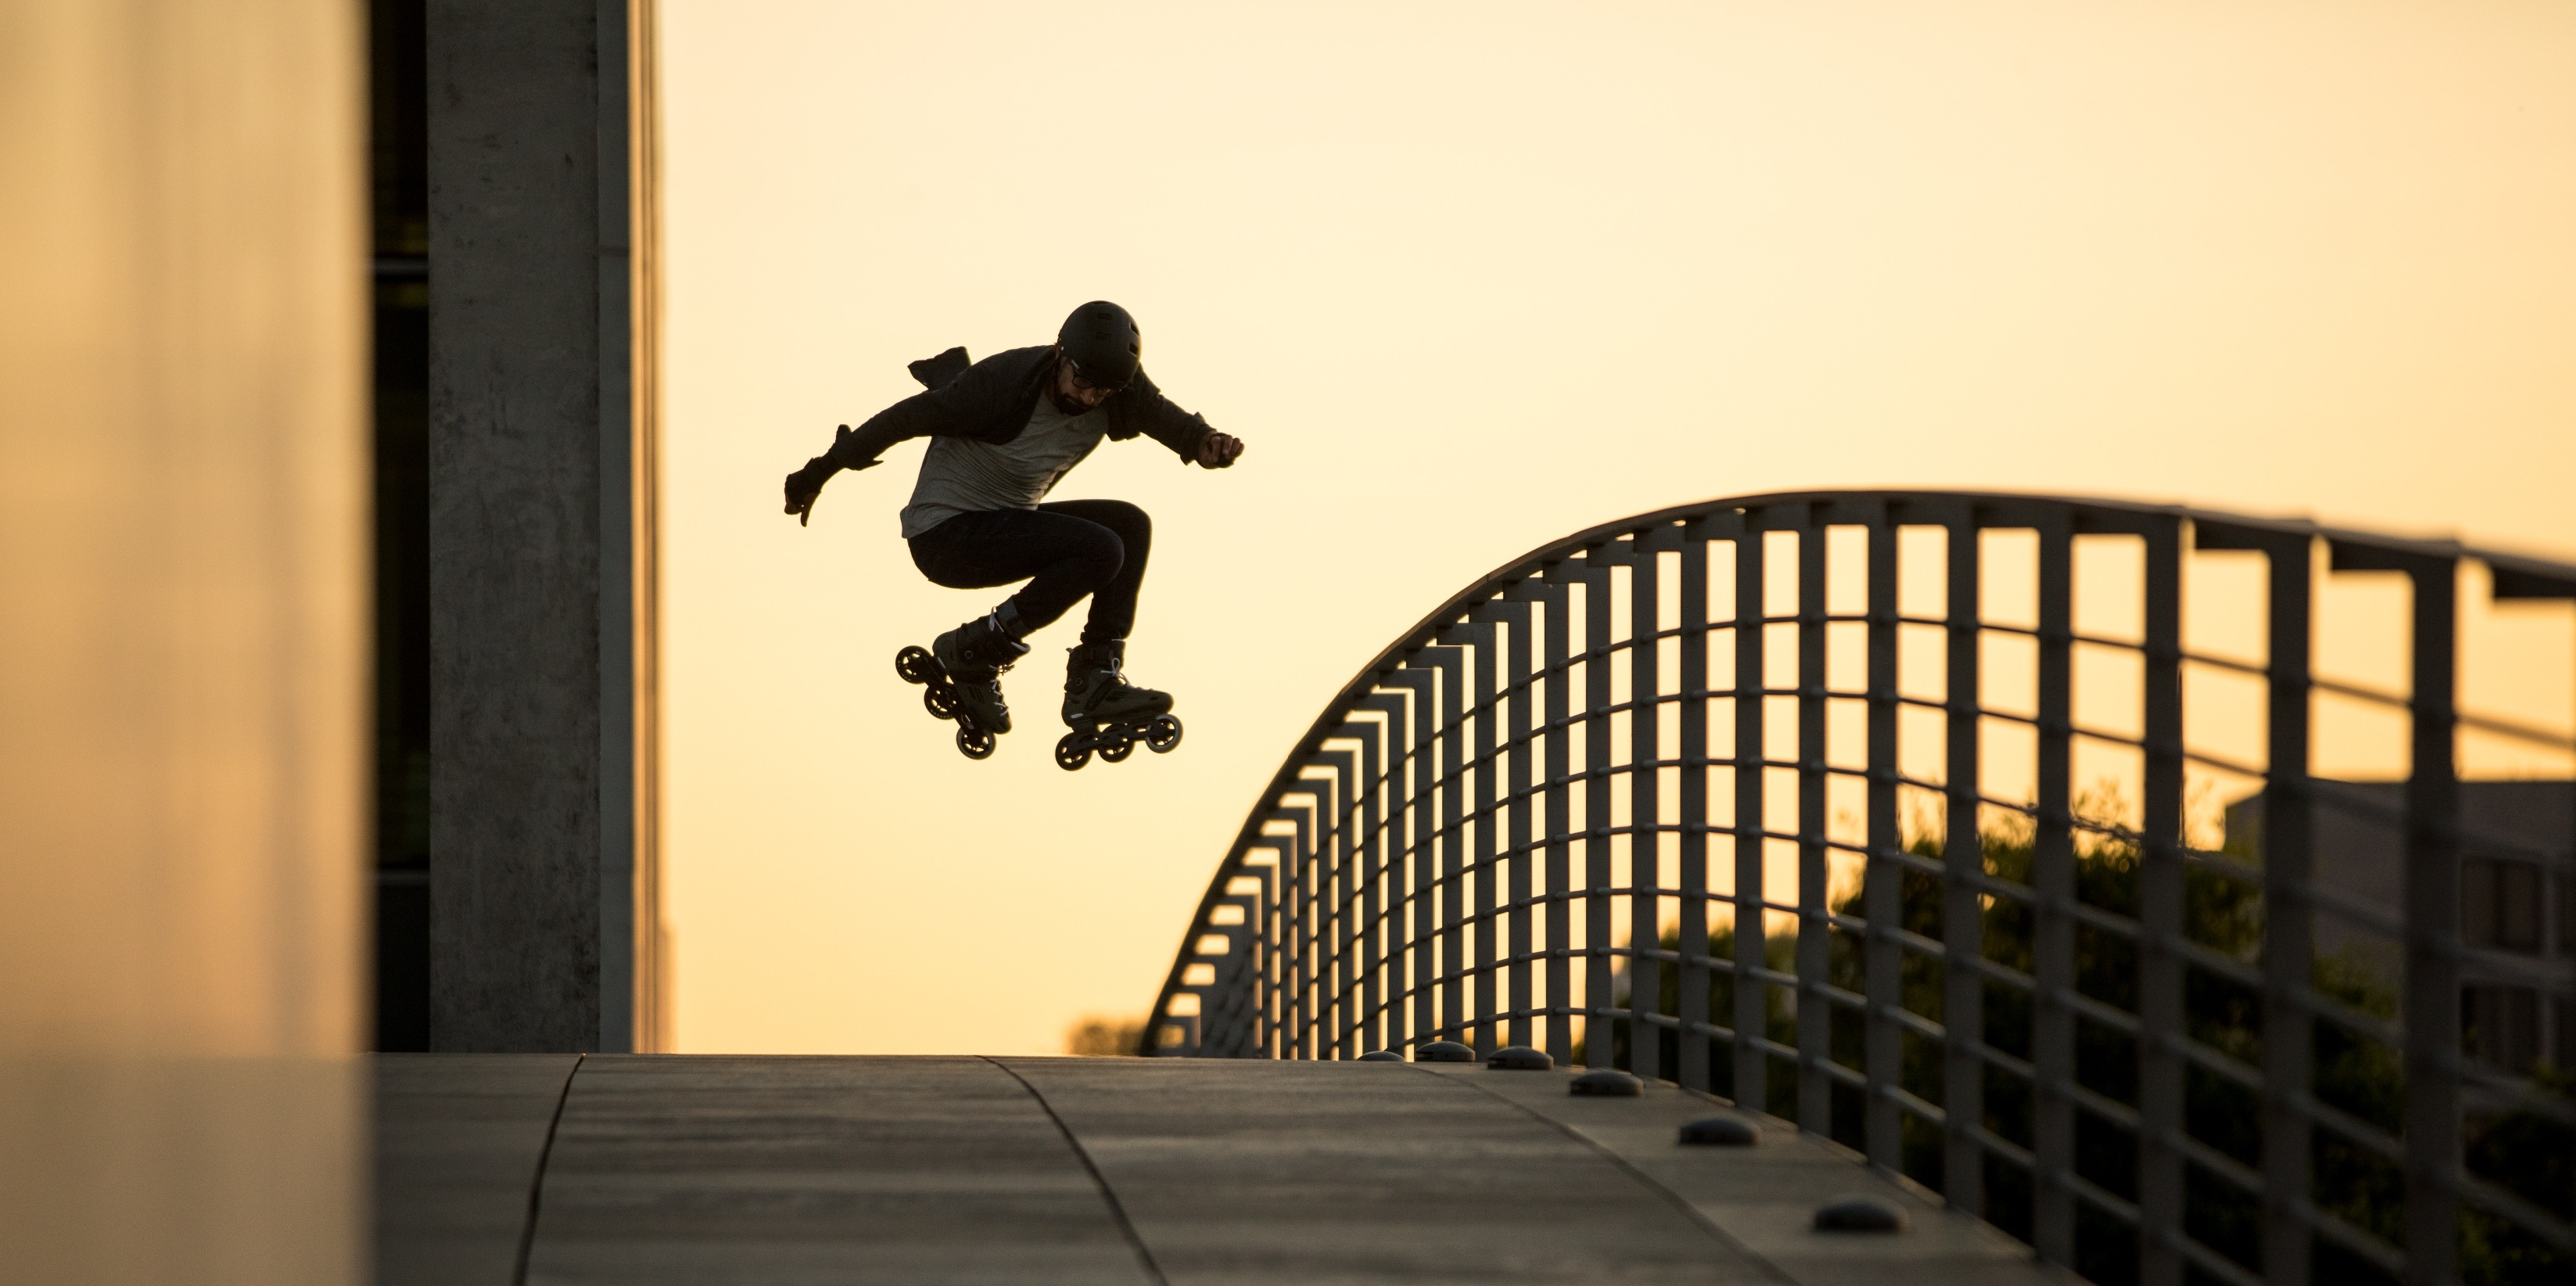 Your Guide To Becoming An In-line Skater